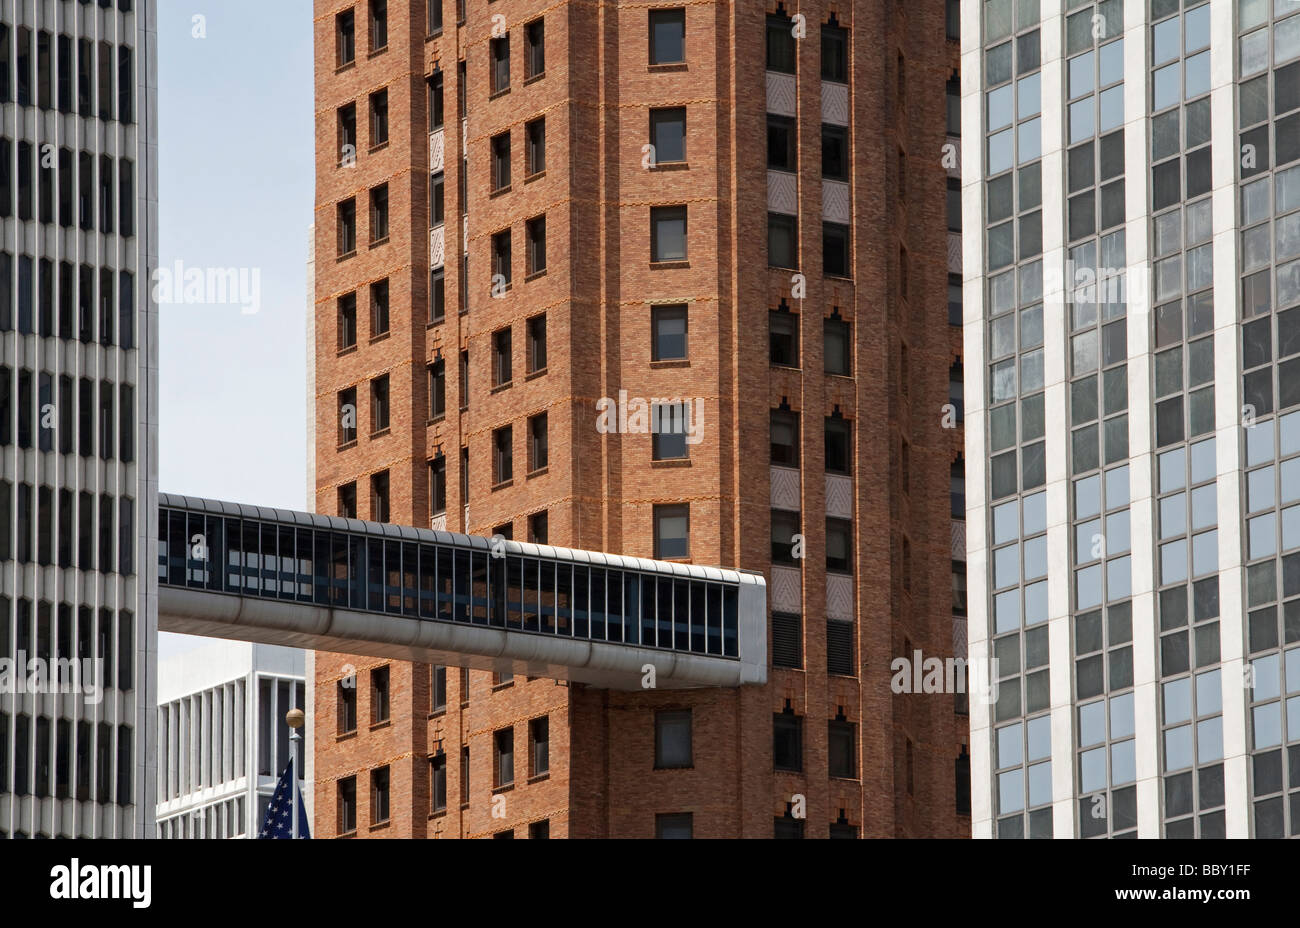 Skybridge connects historic and modern buildings in Detroit - Stock Image